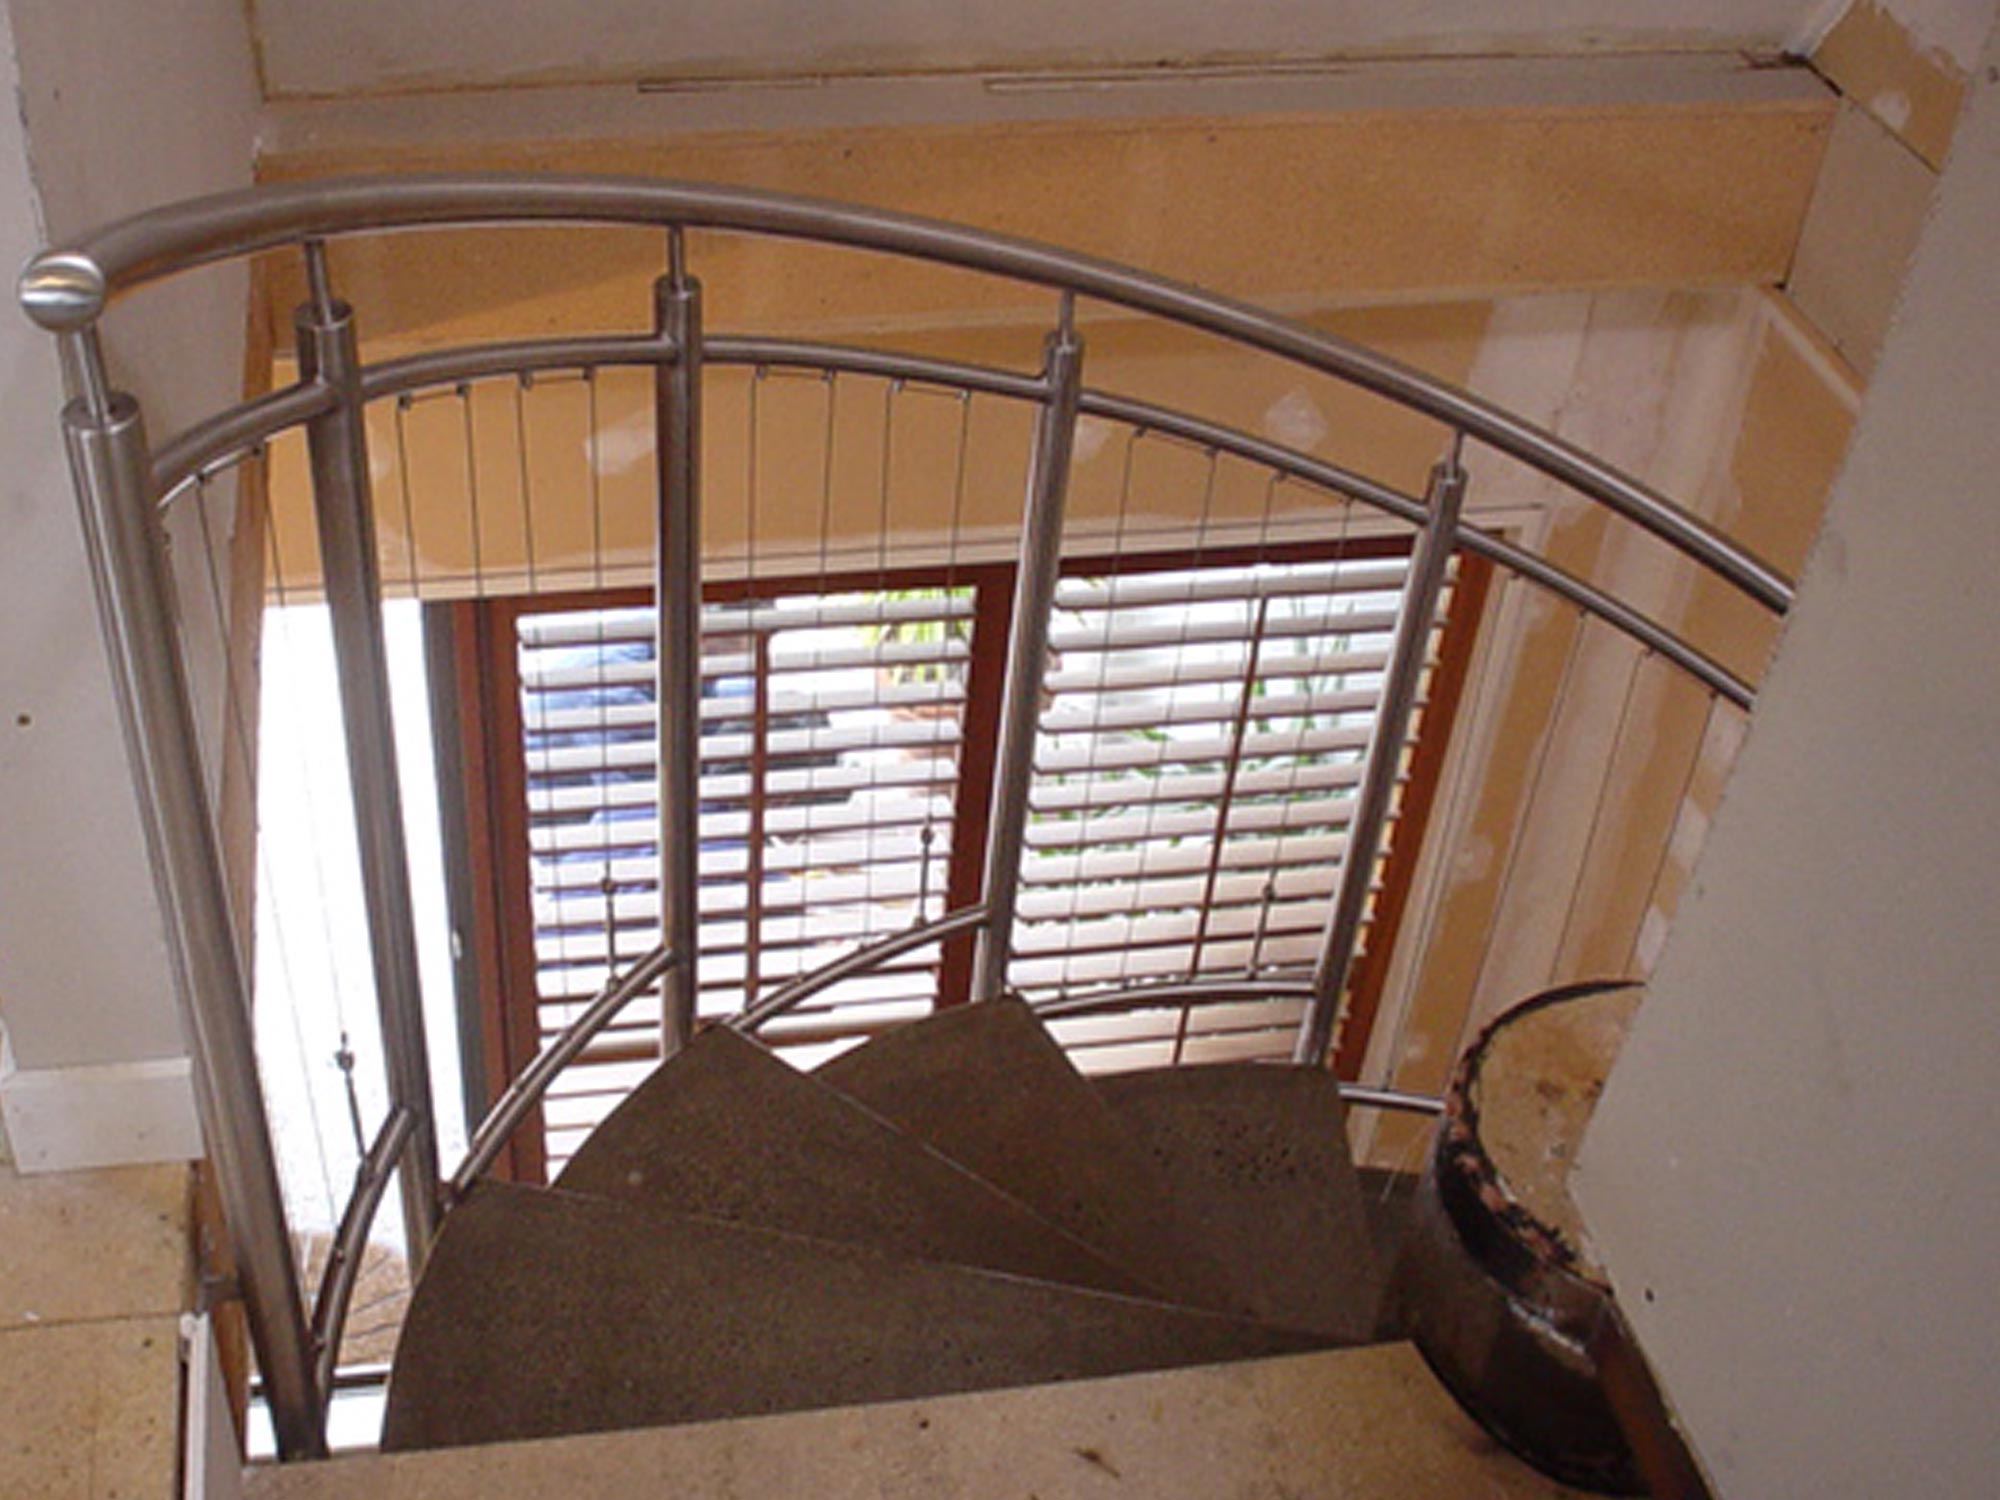 handrail spiral staircase from top